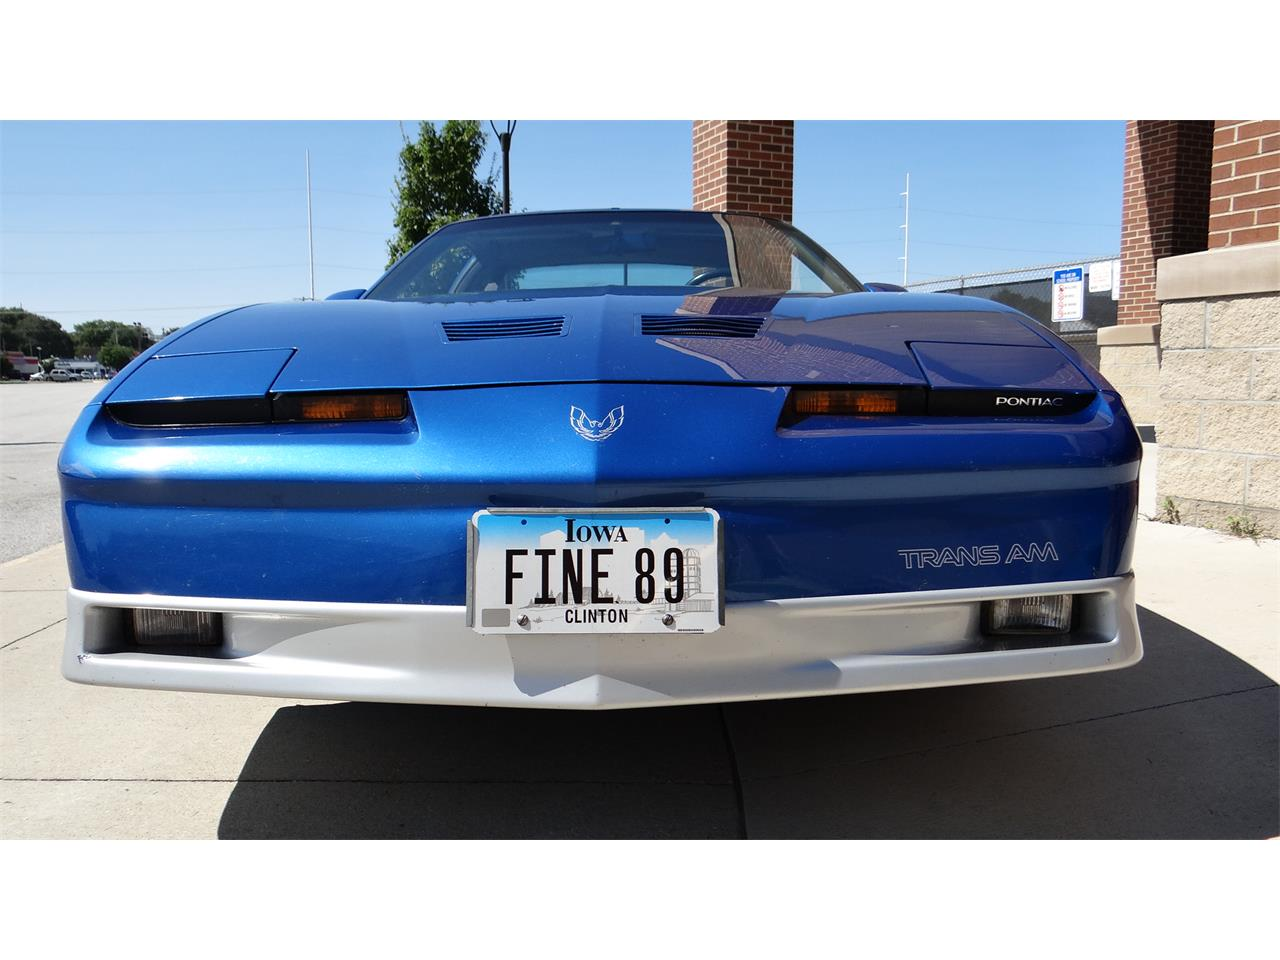 Large Picture of 1989 Pontiac Firebird Formula Trans Am located in Davenport Iowa - $9,900.00 Offered by Klemme Klassic Kars - OKMV